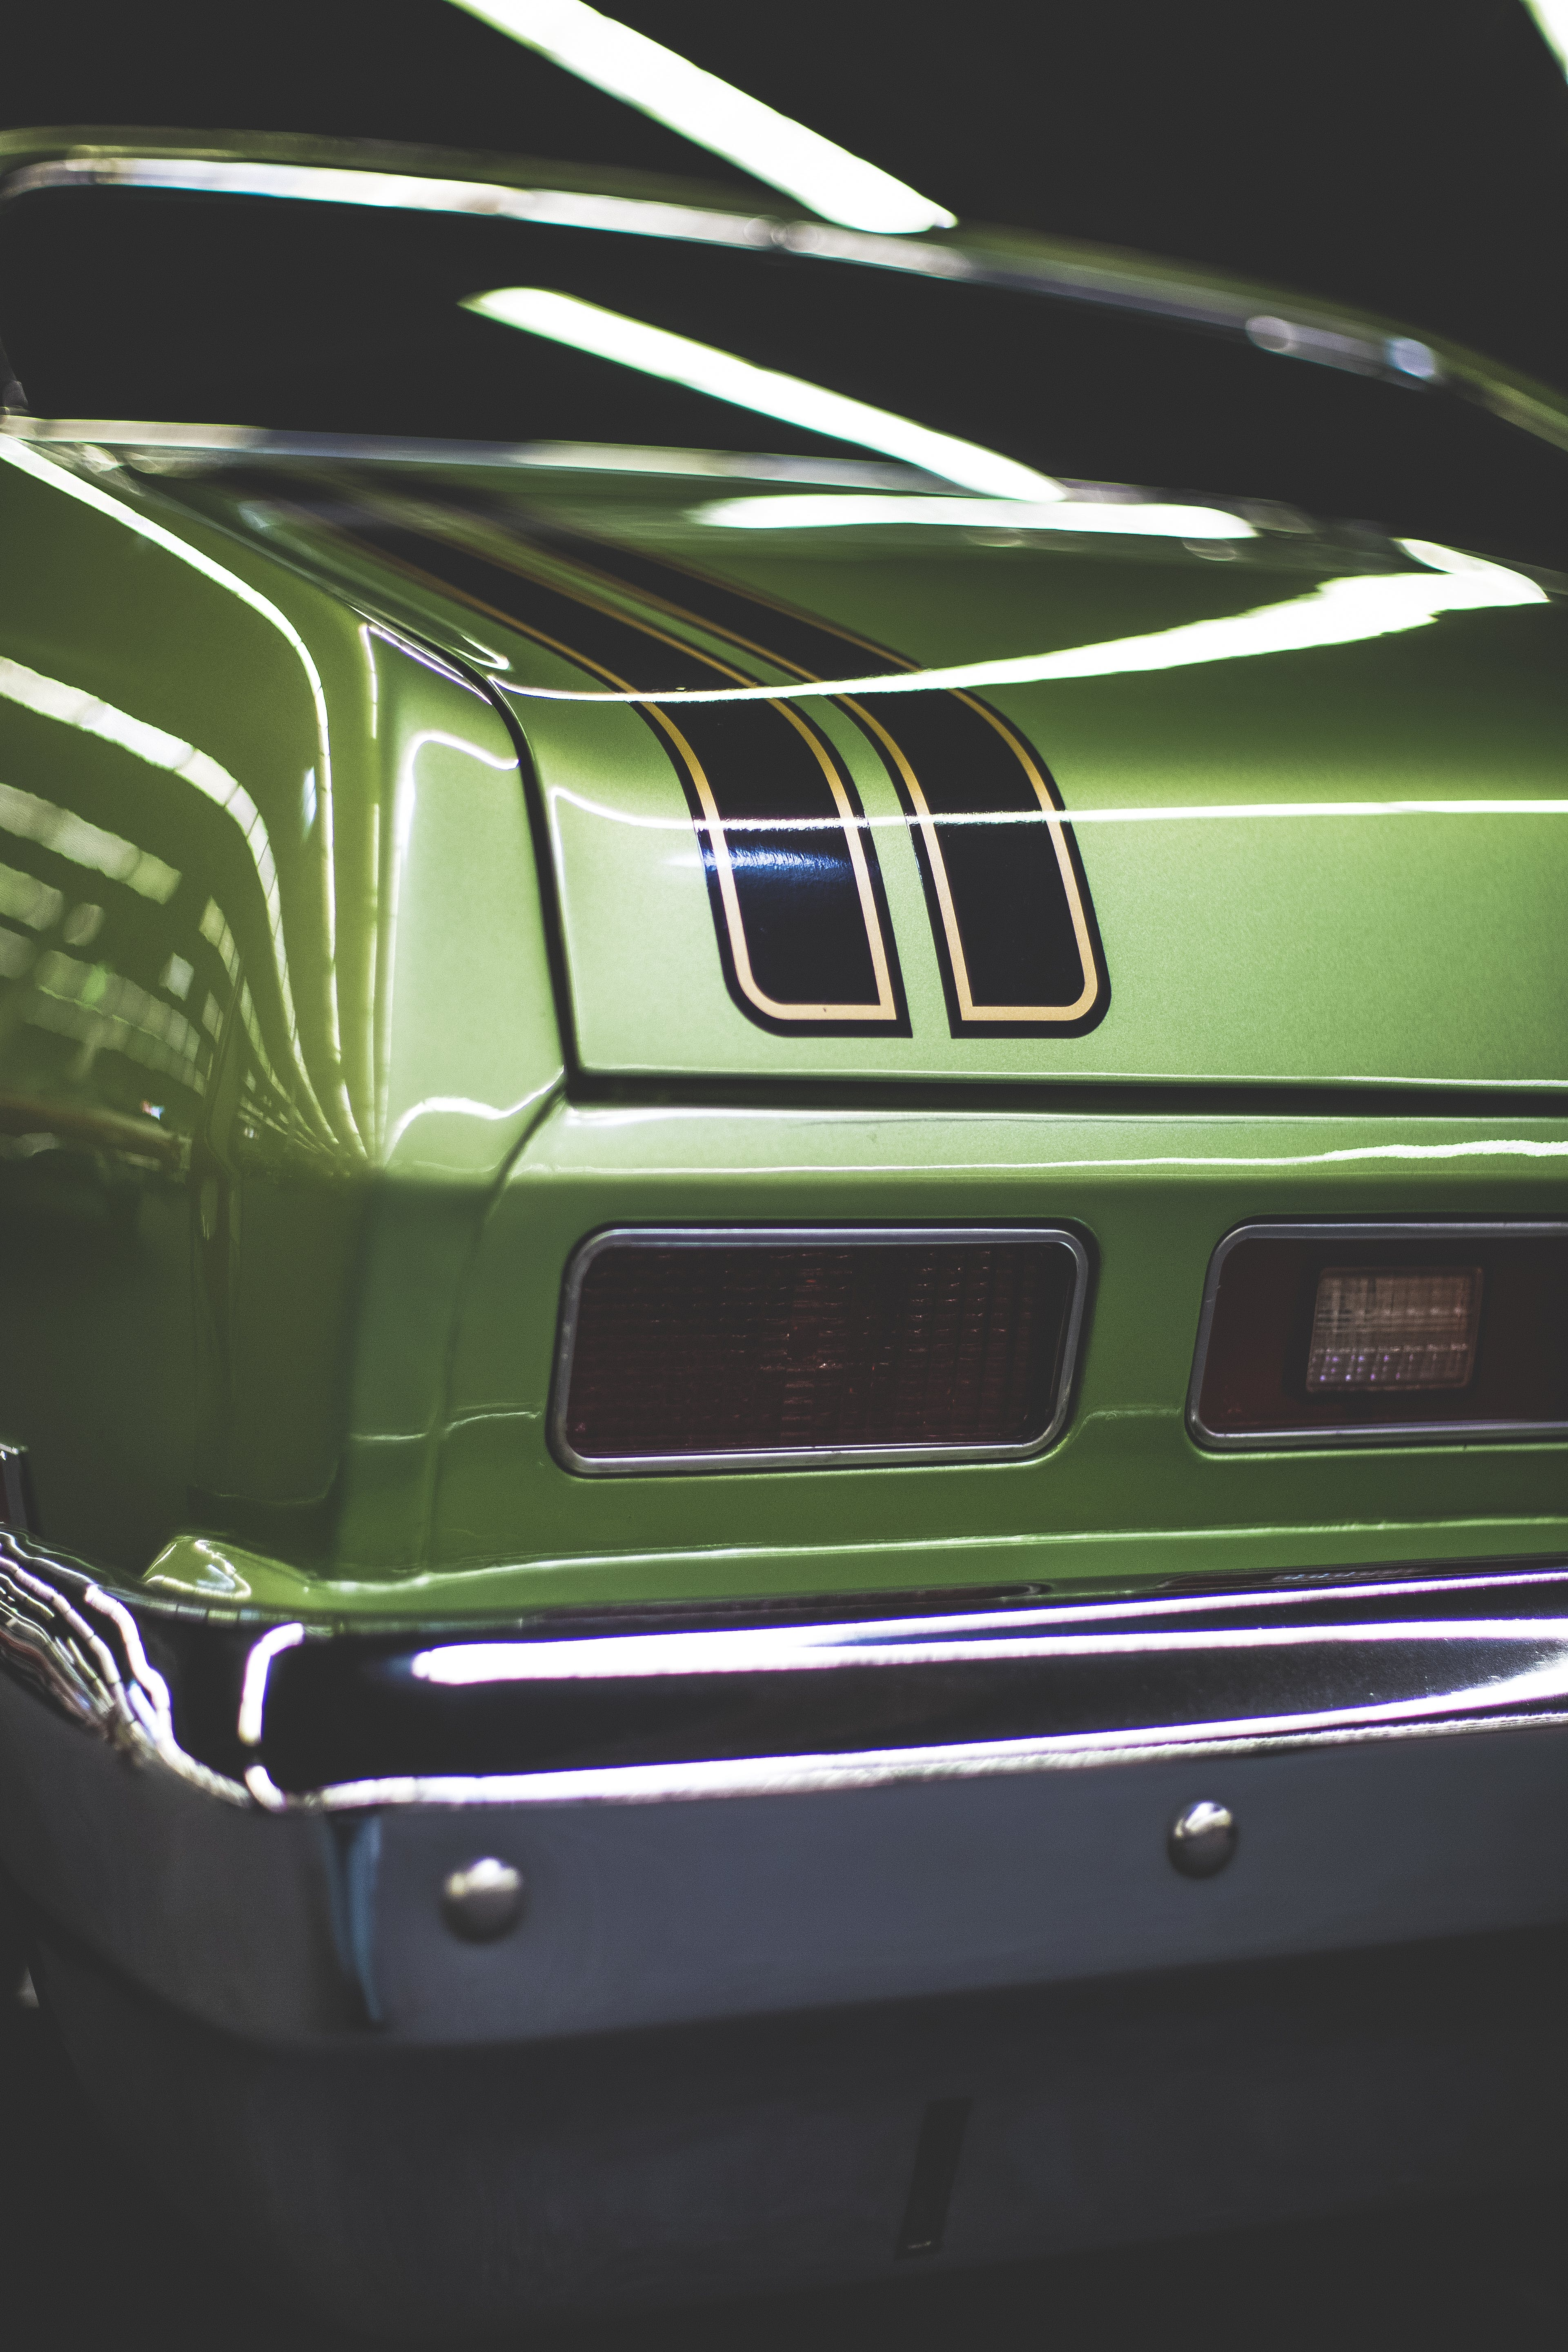 Green and Black Vehicle